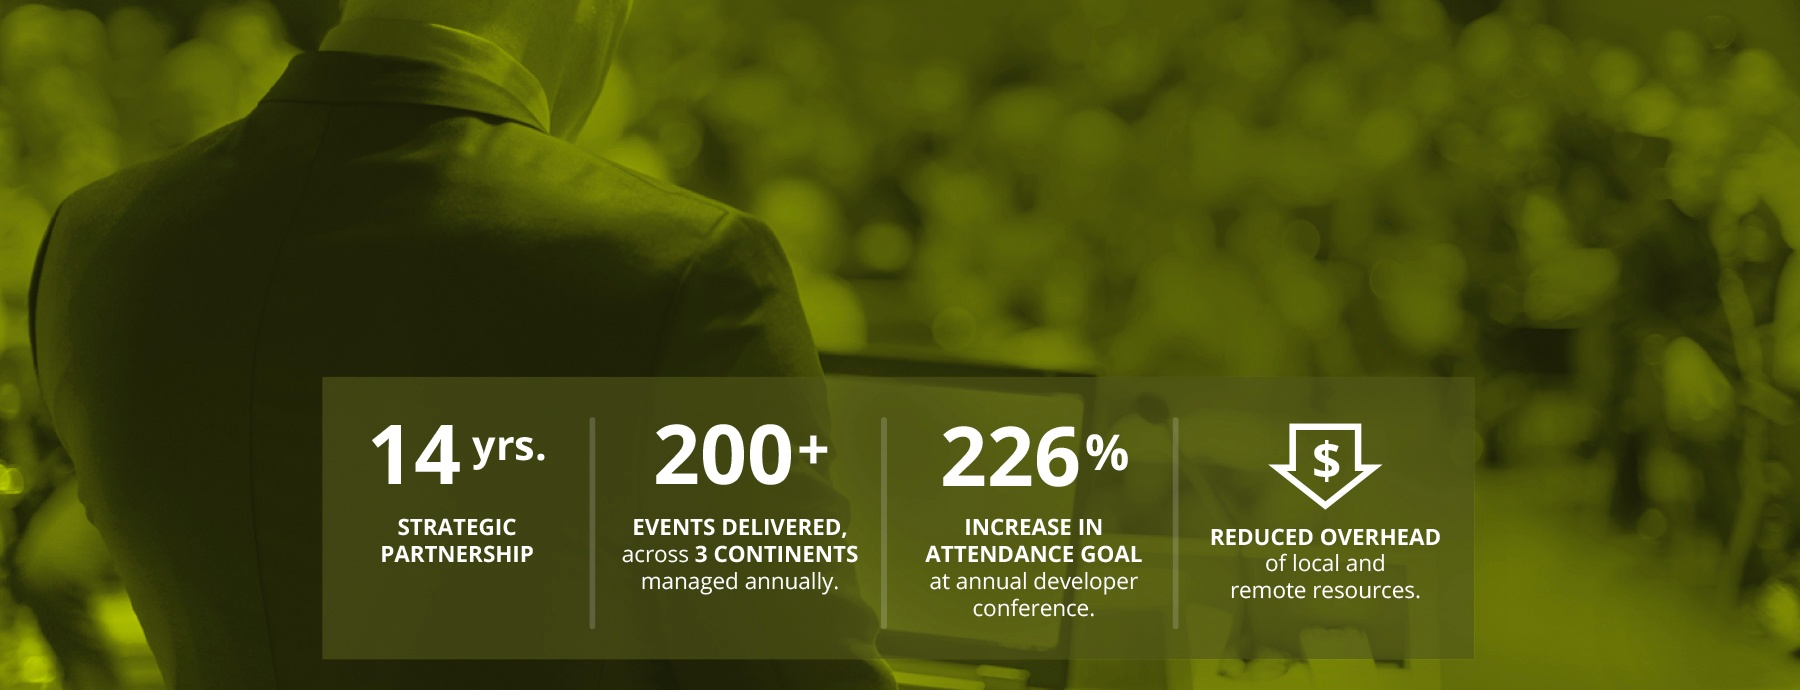 Event Marketing Team Delivers 200+ Corporate Events and Tradeshows For a Digital Marketing and Media Leader